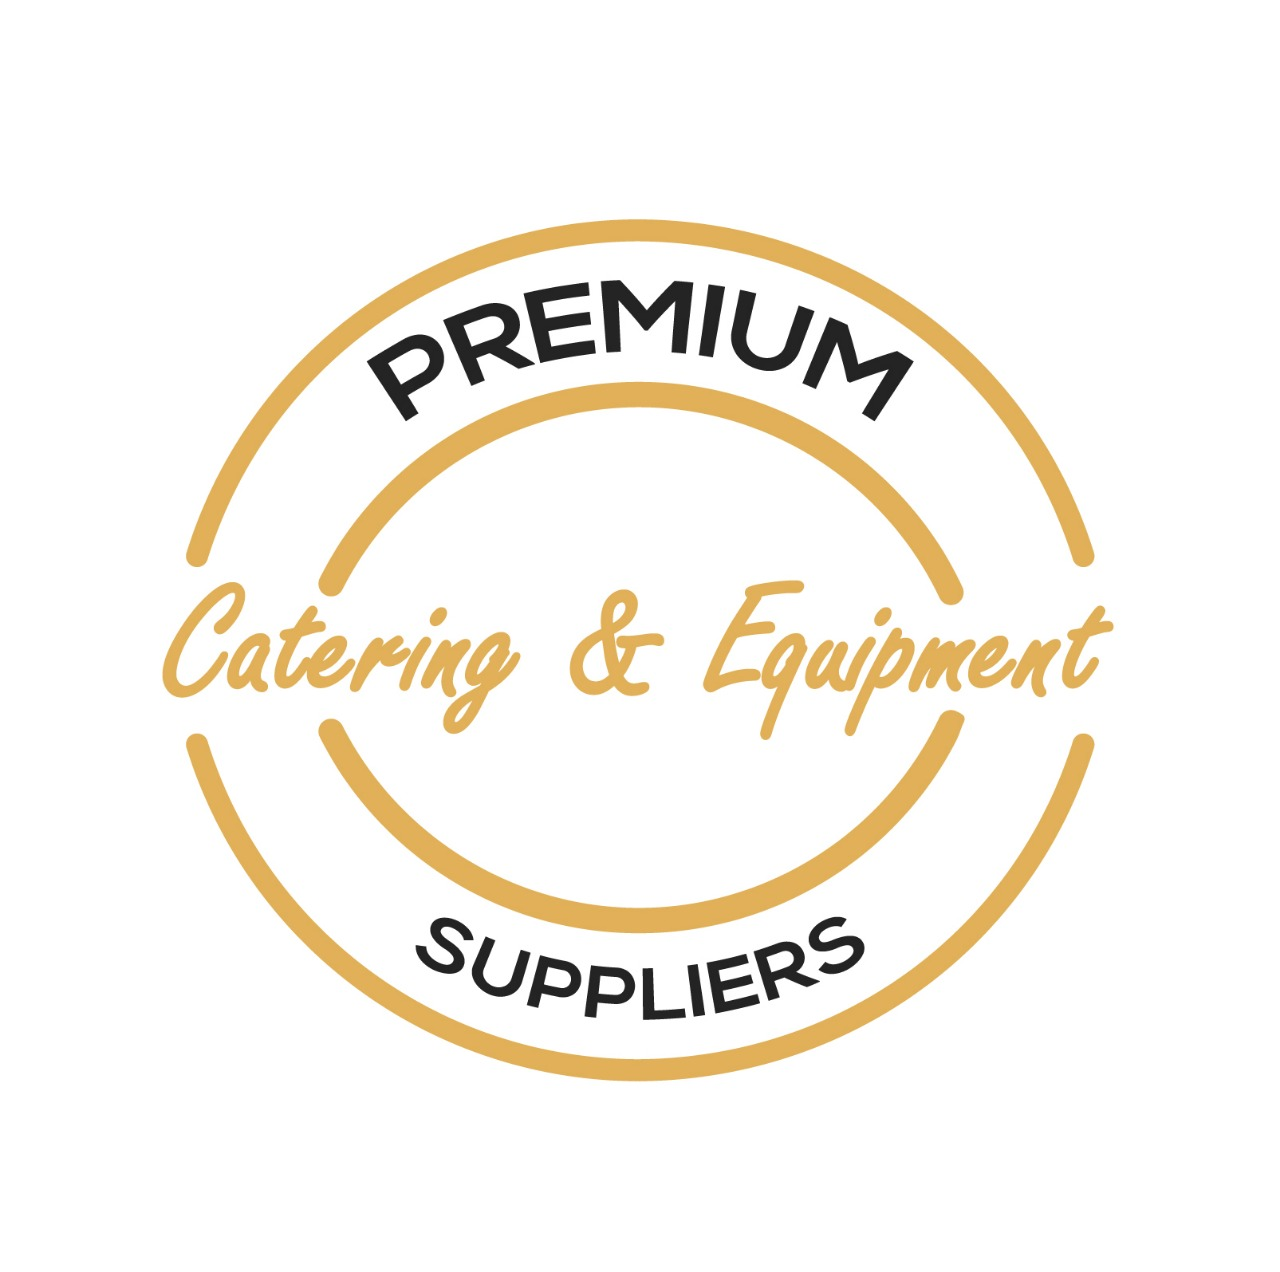 Catering equipment Suppliers